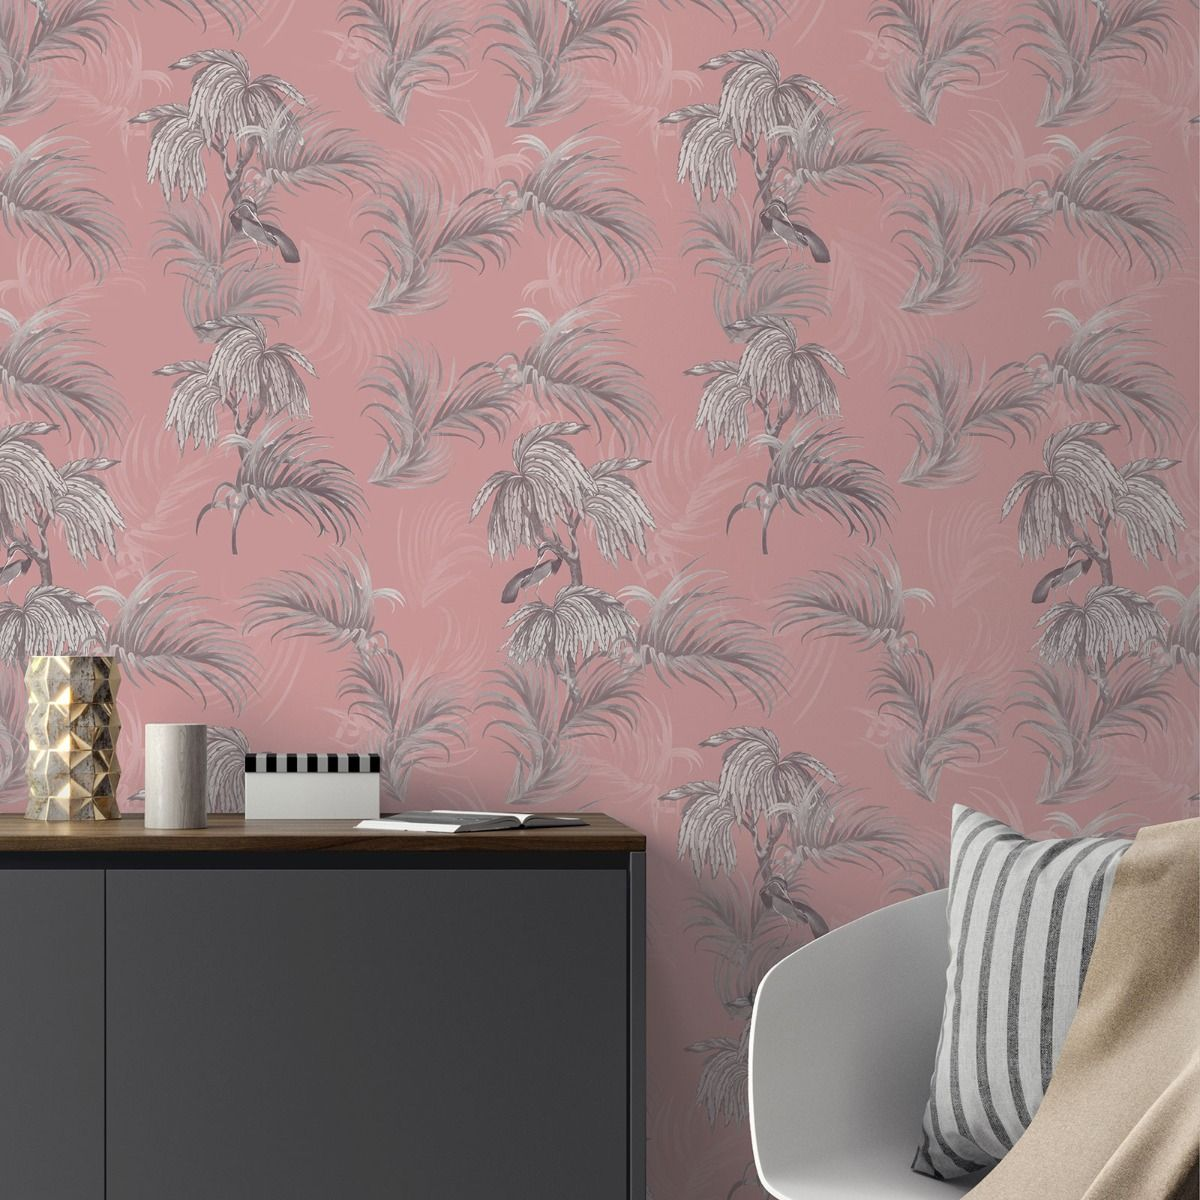 Ted's Enchanted Collection Horizon Wallpaper-Pink, Ted Baker 12500